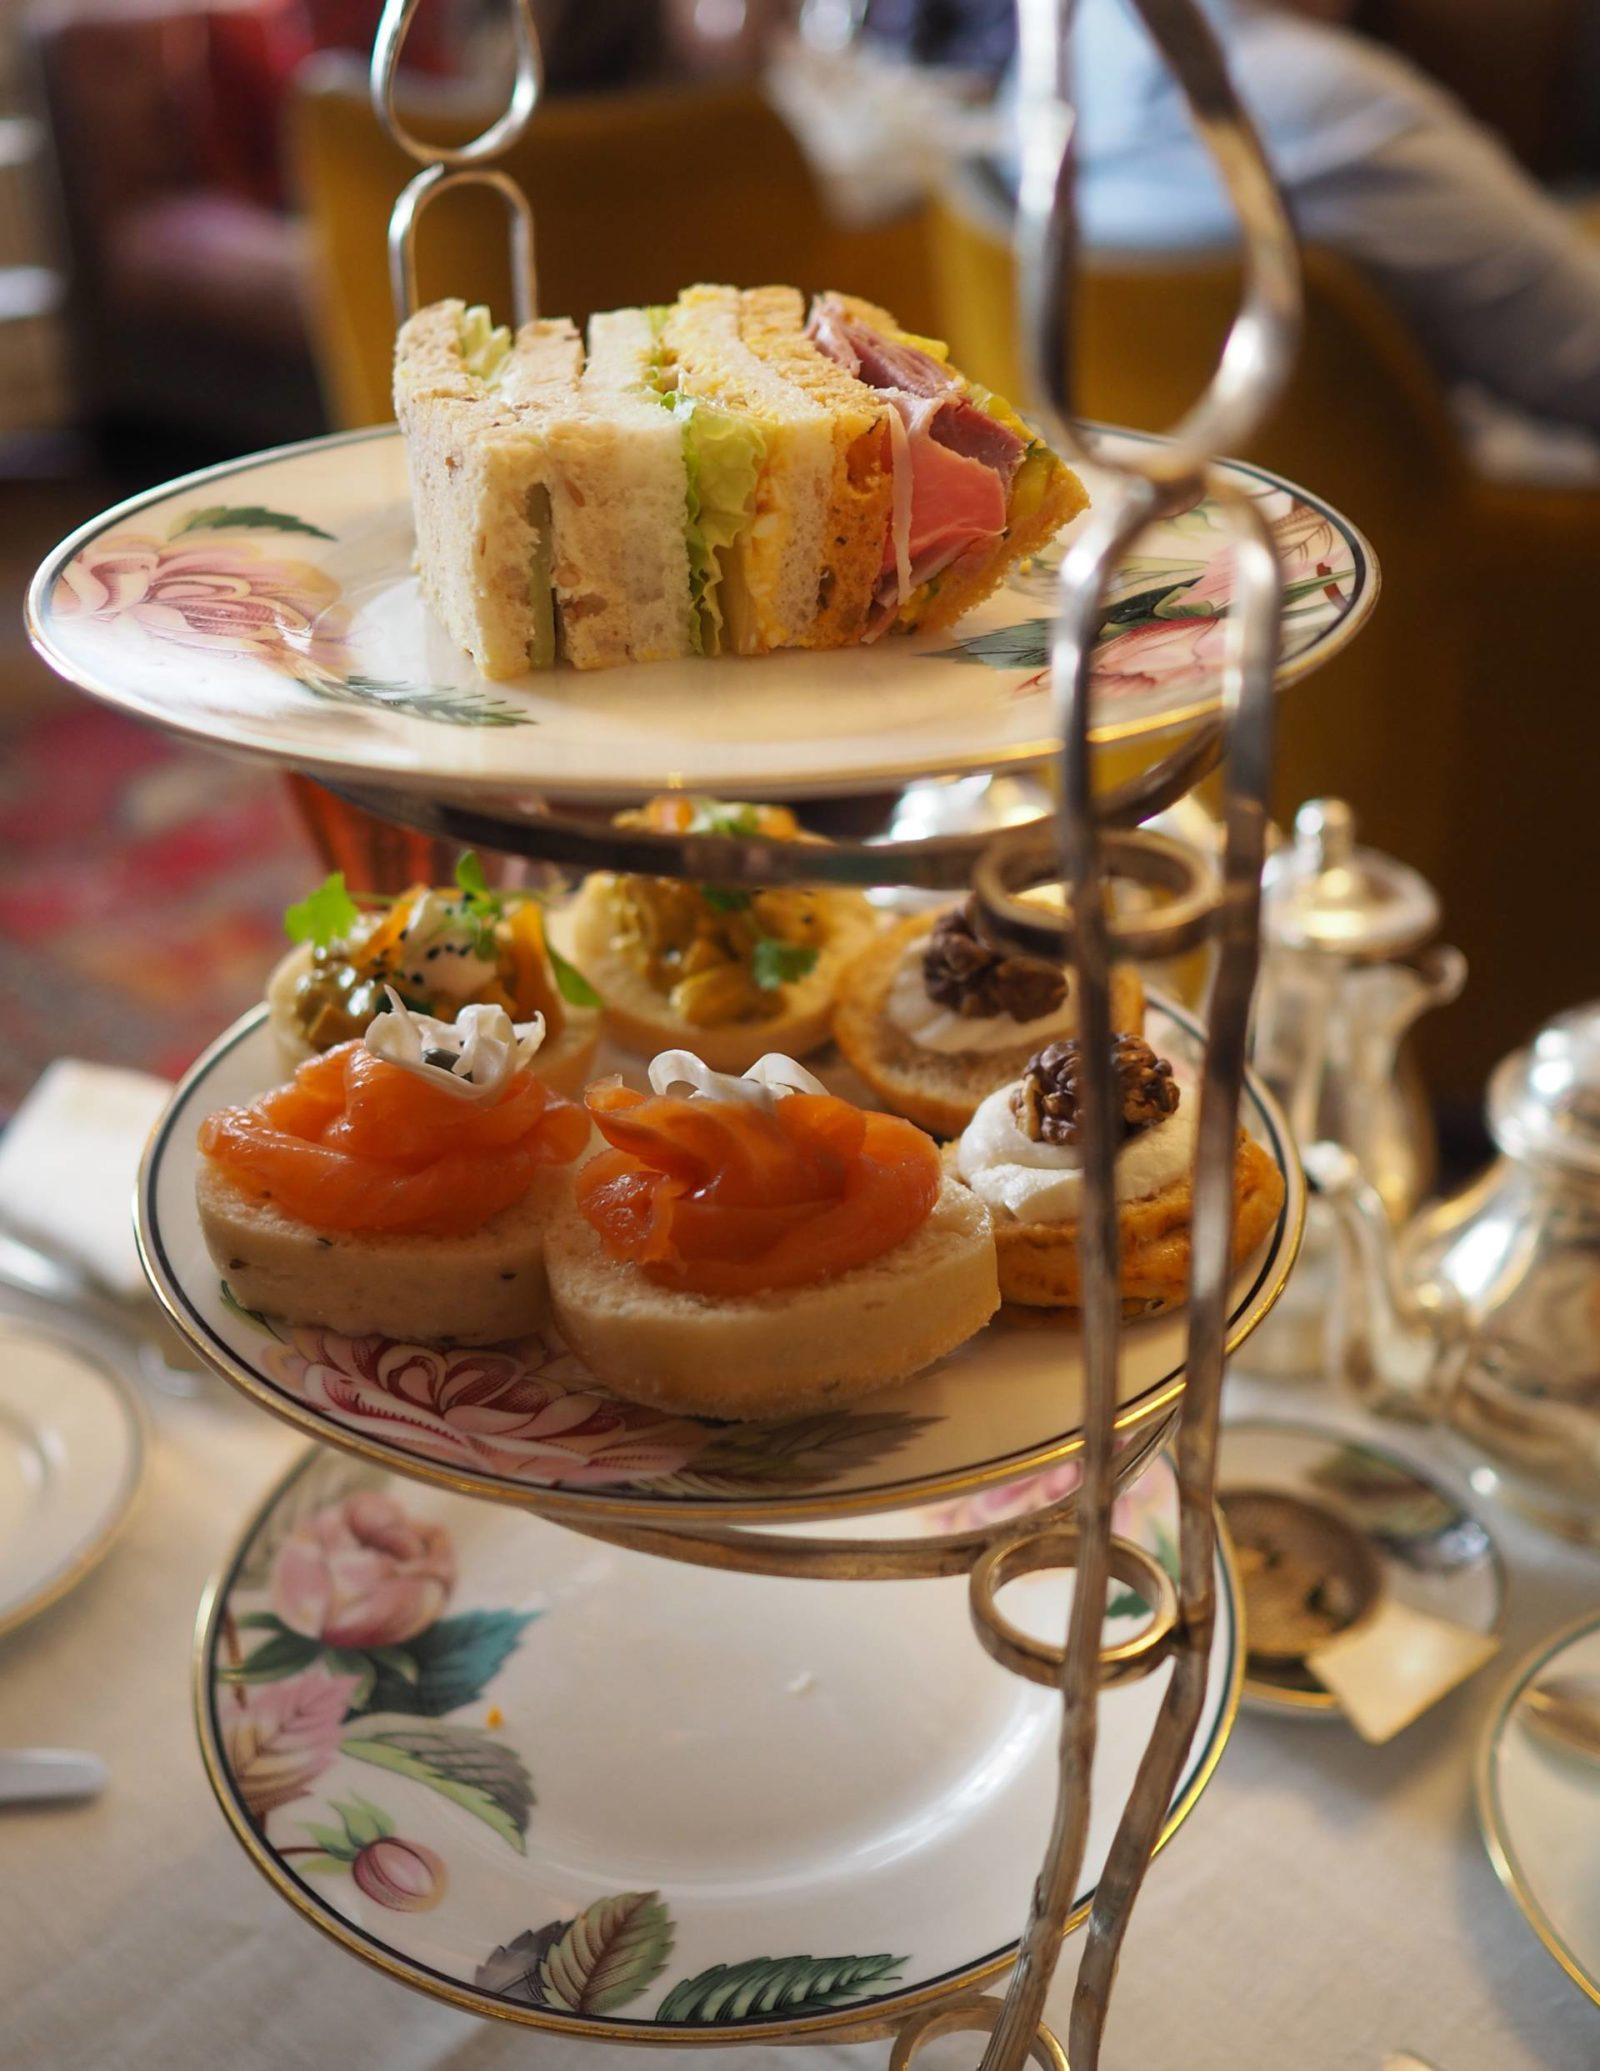 gluten free afternoon tea: brown's hotel, london - my 2017 review